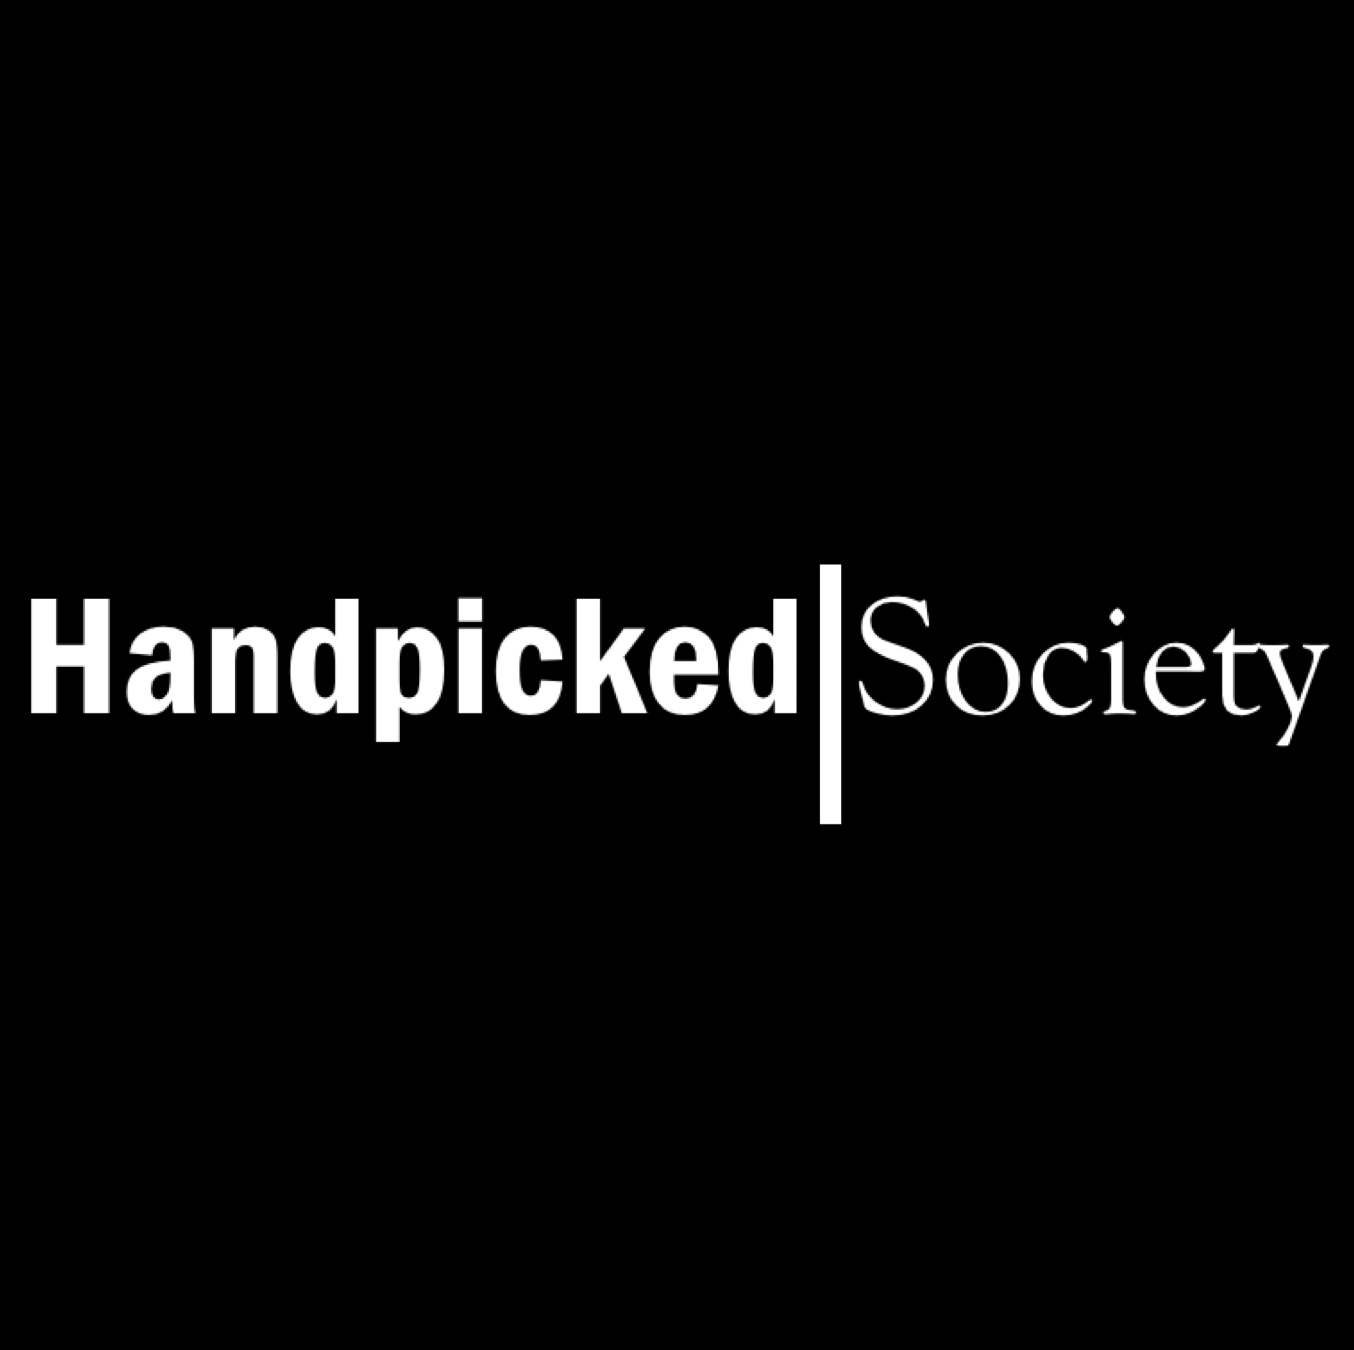 Handpicked_Society_logo_on_black.PNG